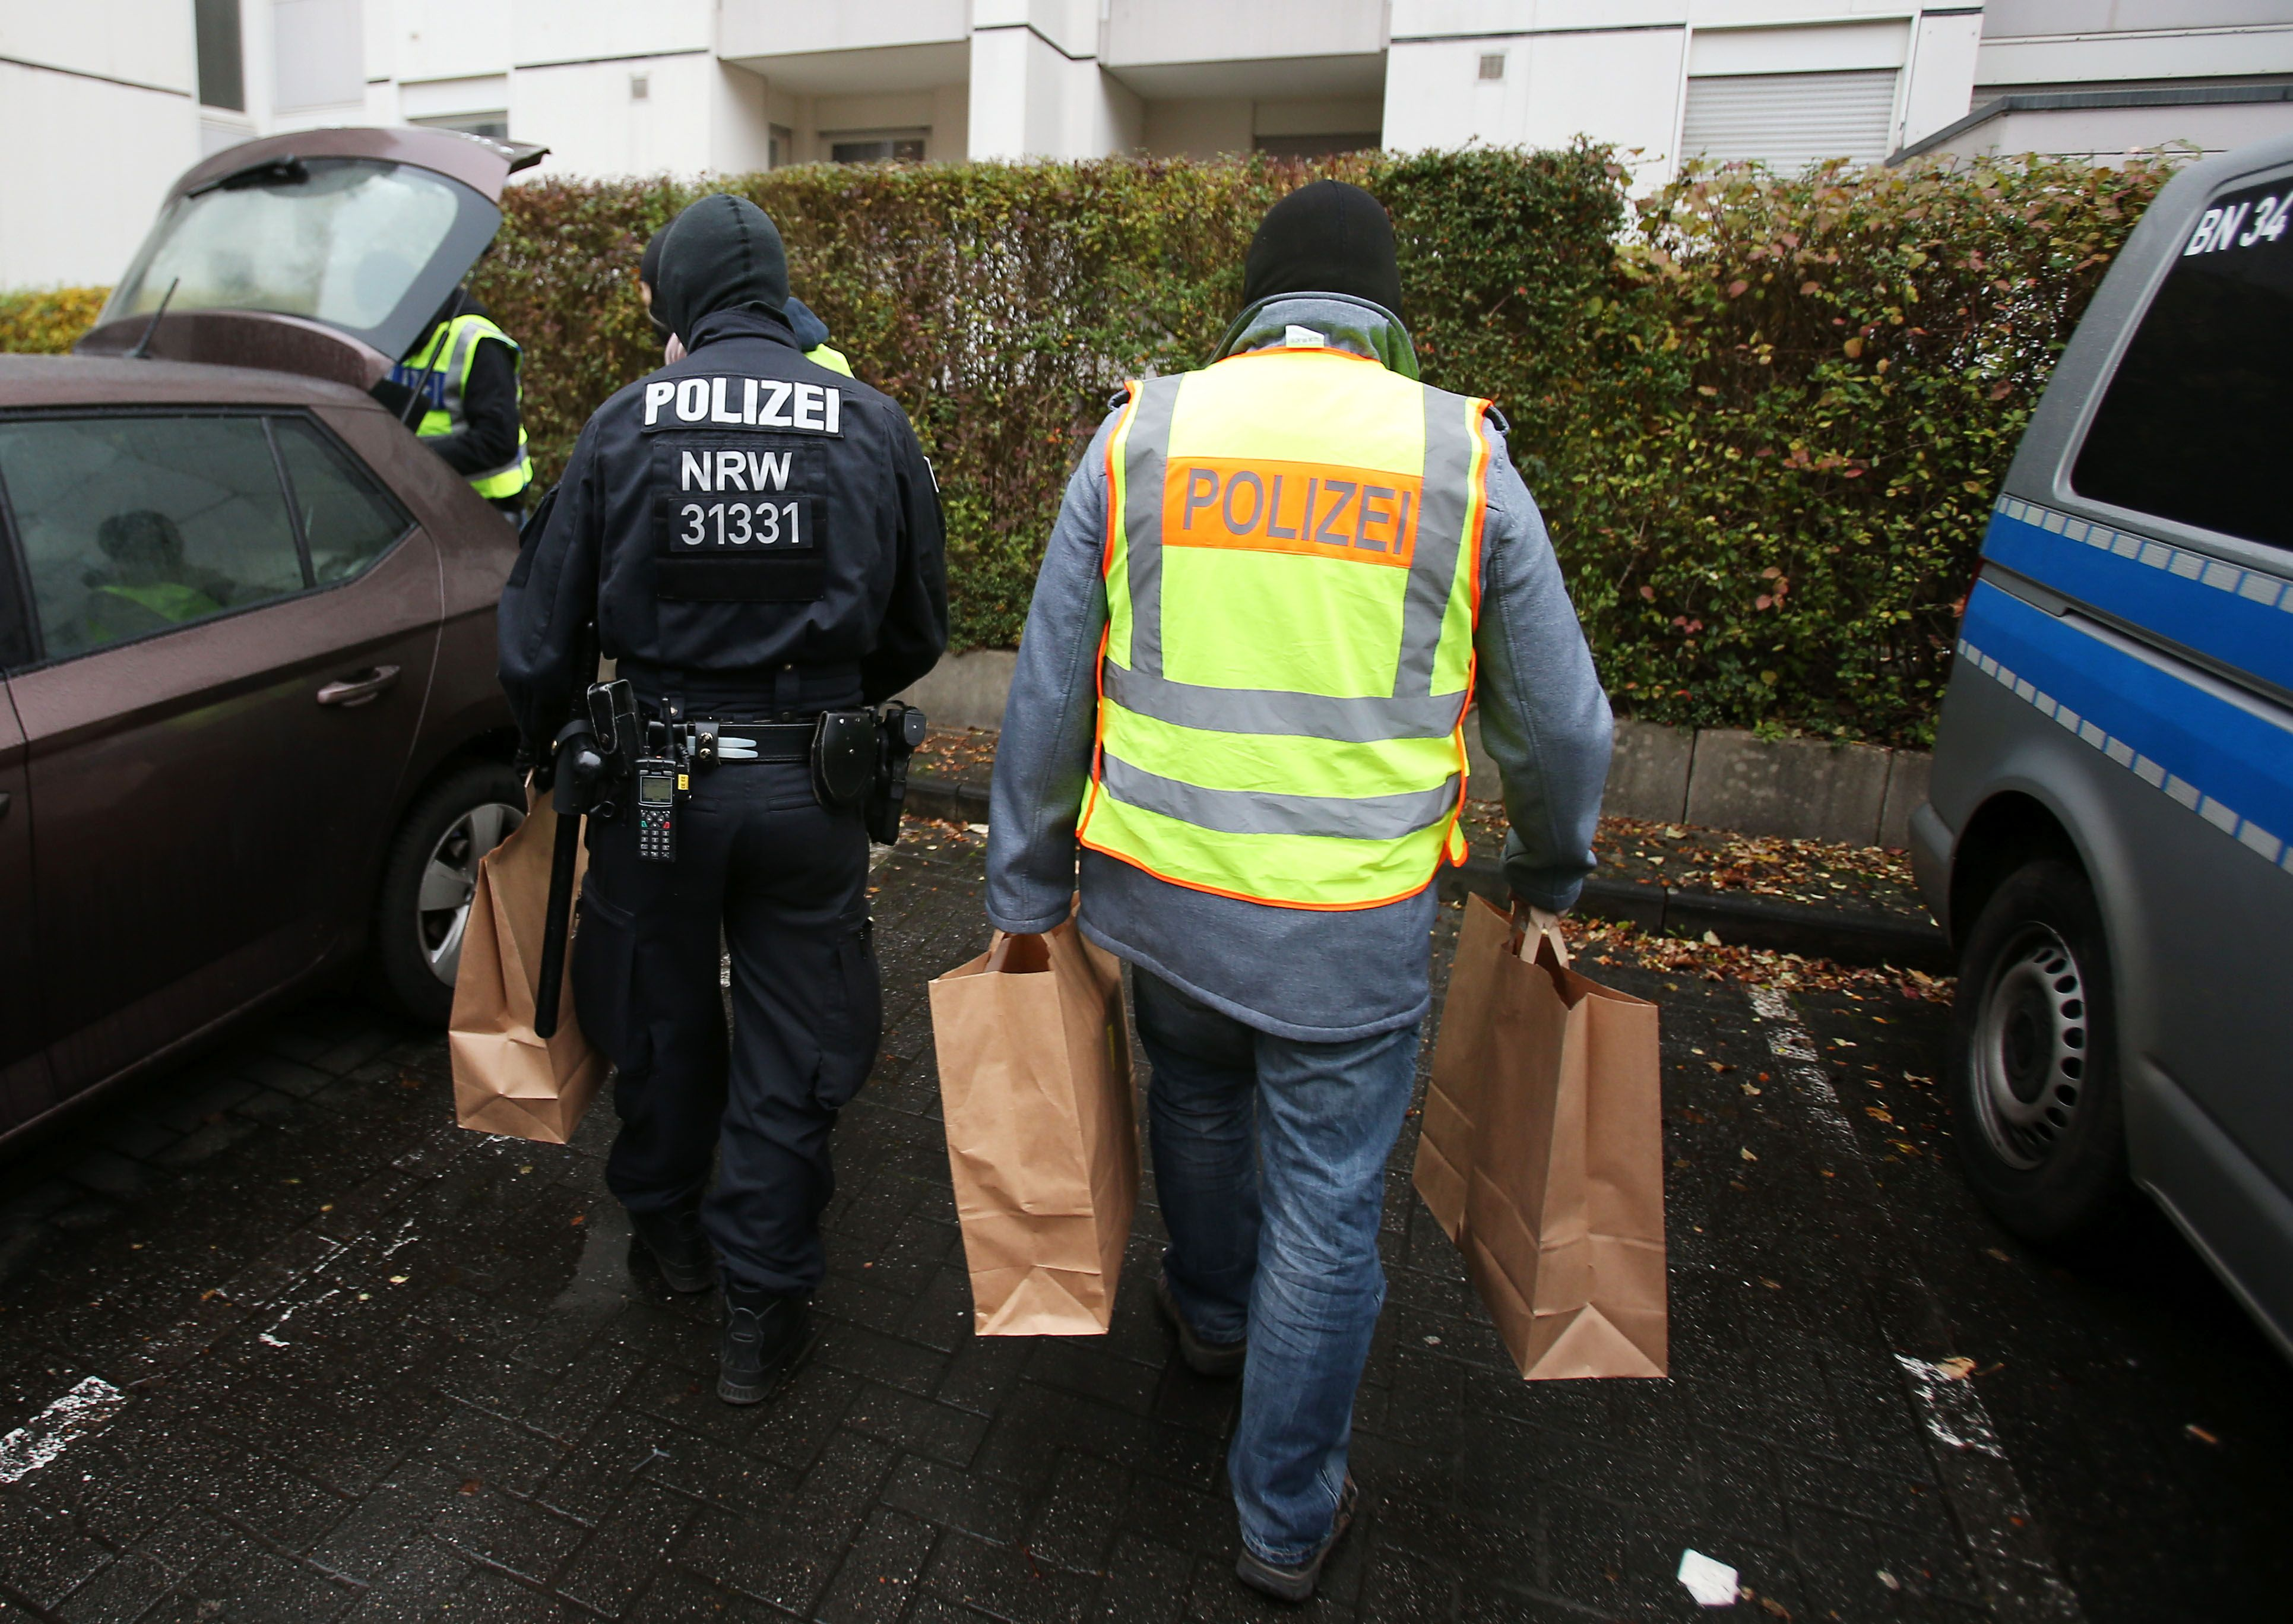 German authorities raid mosques and flats, ban extremist group